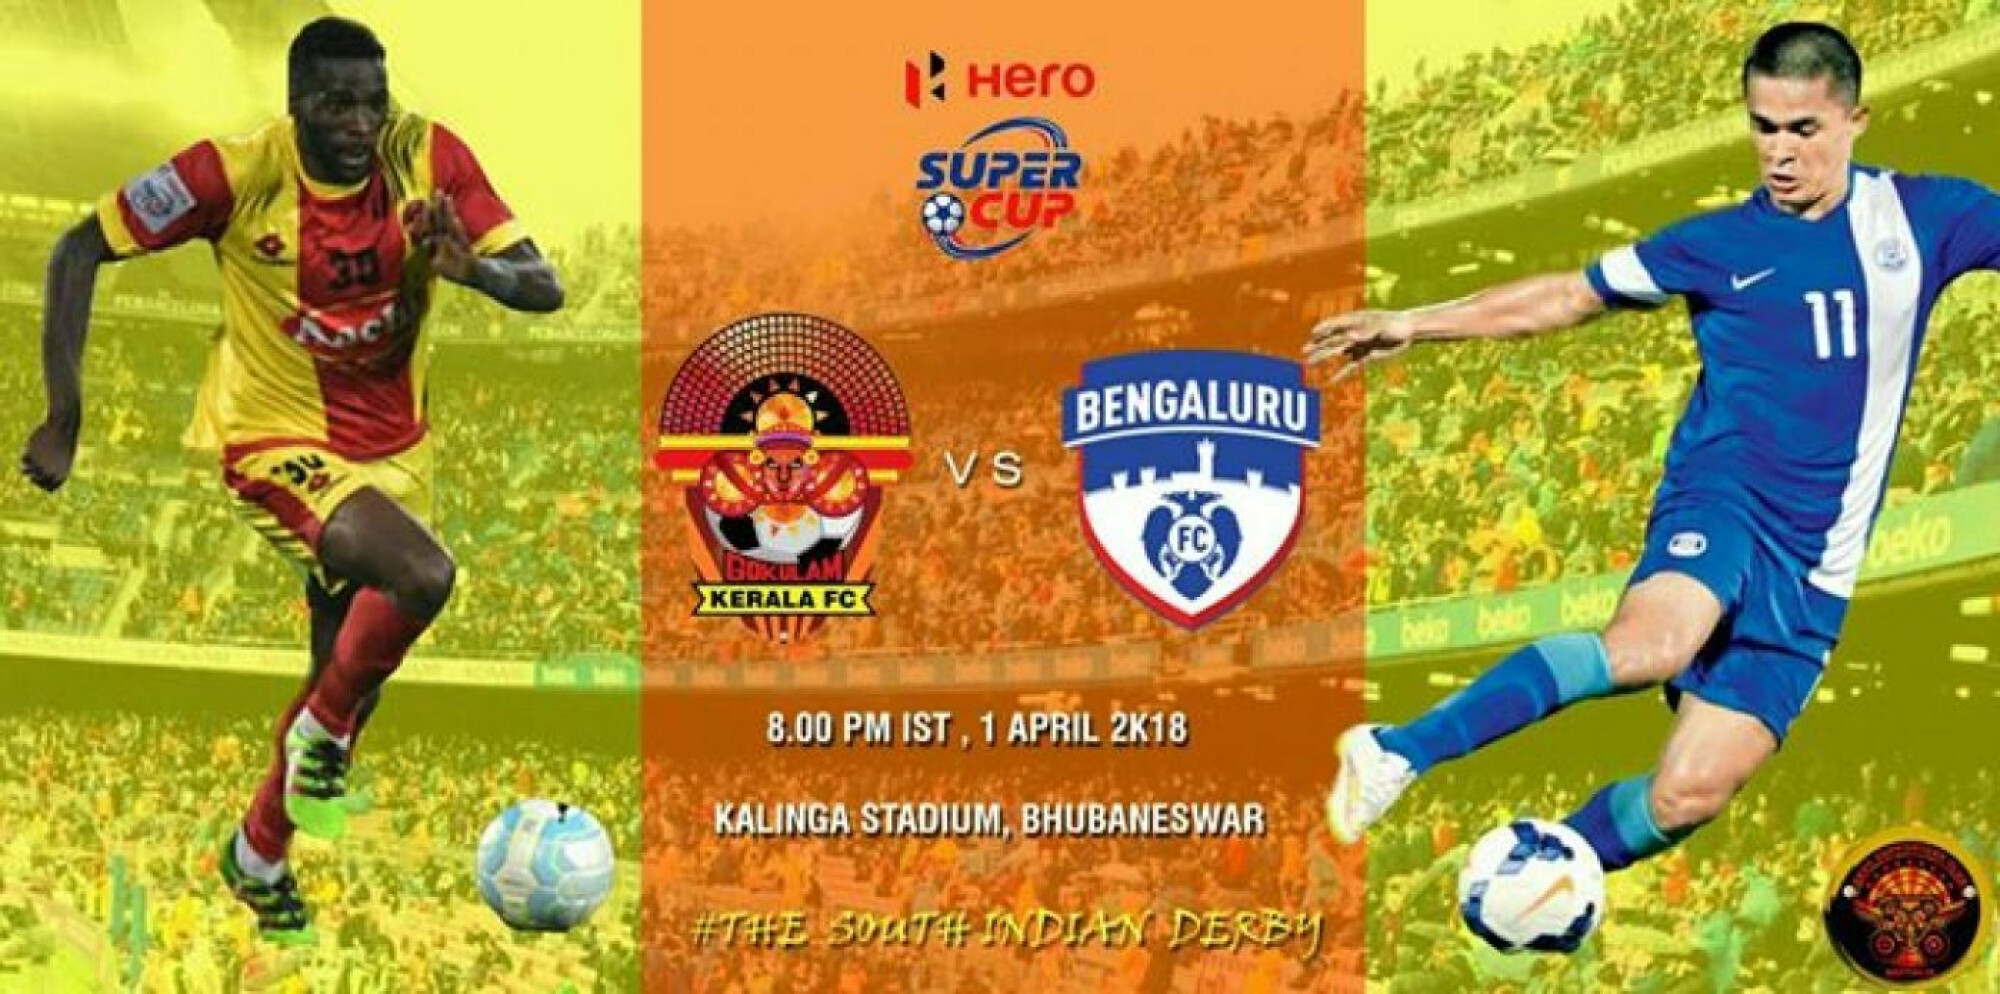 Bengaluru FC vs Gokulam Kerala FC - A match made in South India